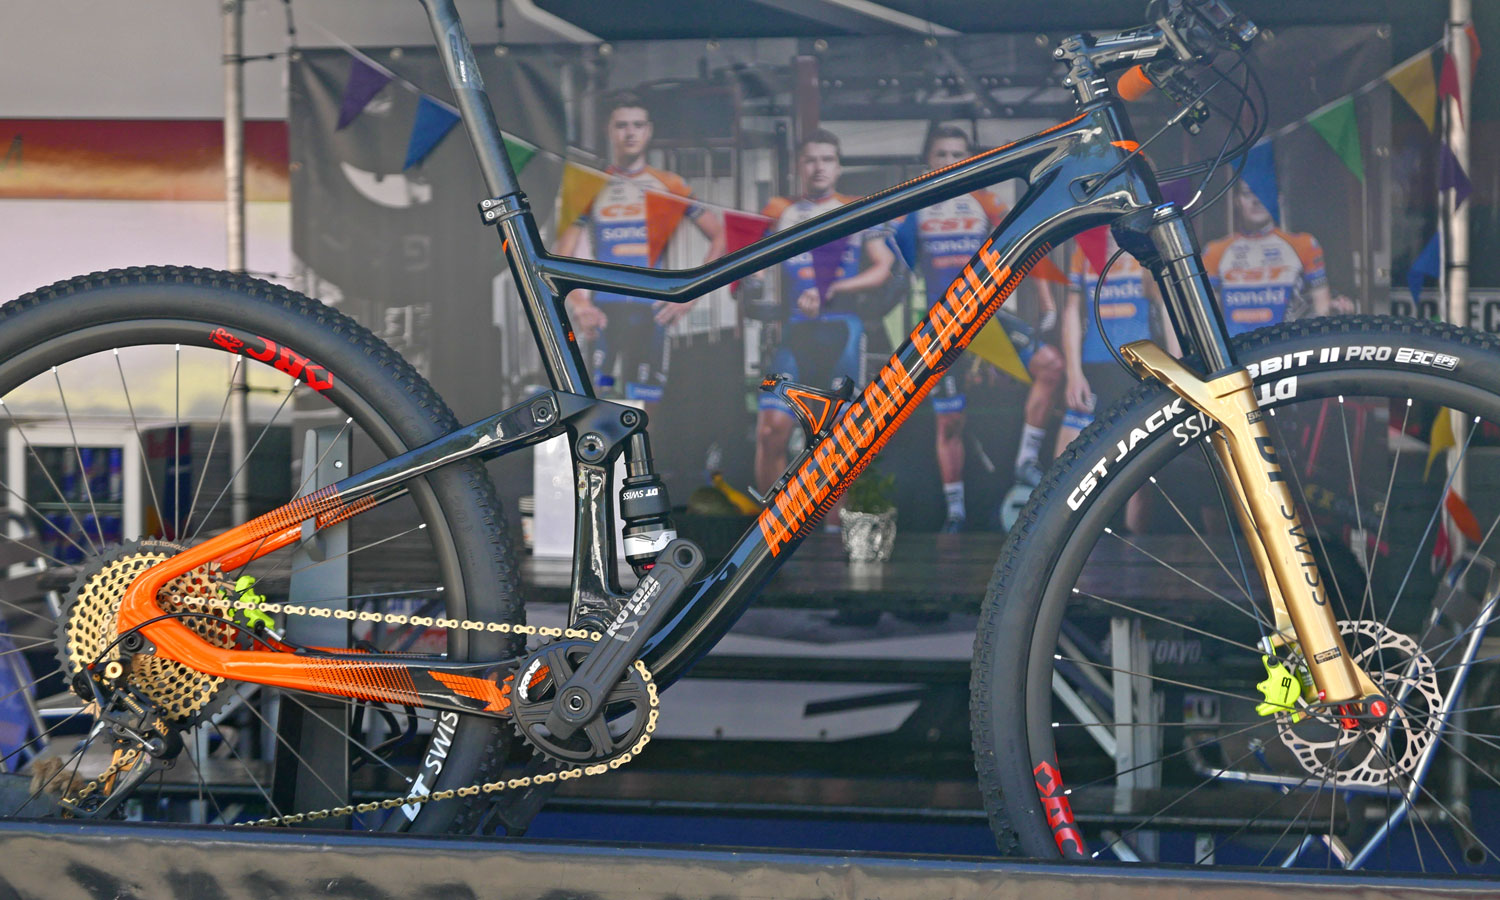 2020 American Eagle Flow XC MTB, short-travel 100mm carbon full-suspension cross-country race mountain bike